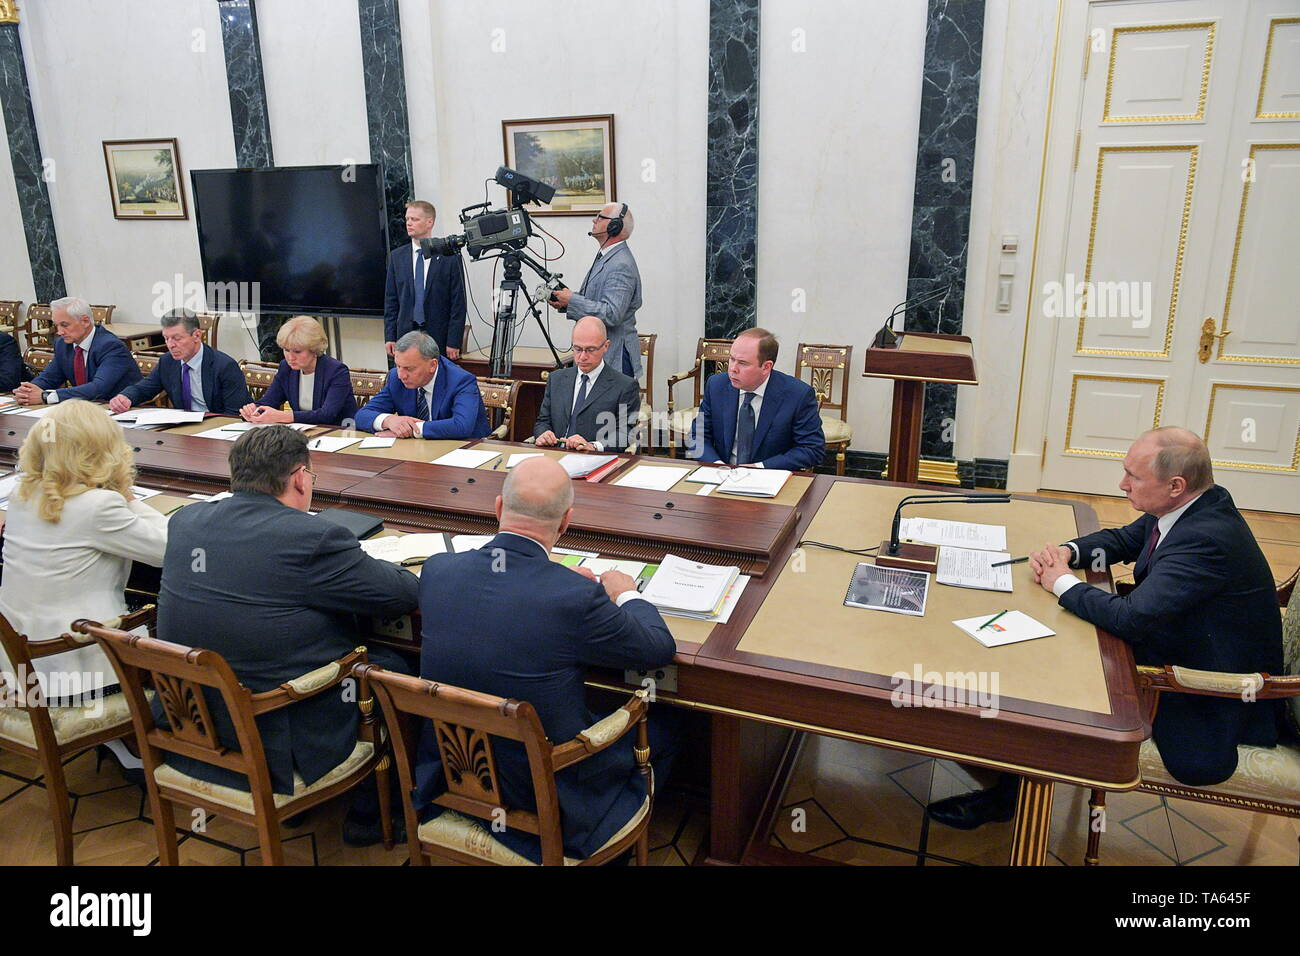 Moscow, Russia. 22nd May, 2019. MOSCOW, RUSSIA - MAY 22, 2019: Russia's President Vladimir Putin (R) during a meeting with members of the Russian Government at the Moscow Kremlin. Alexei Druzhinin/Russian Presidential Press and Information Office/TASS Credit: ITAR-TASS News Agency/Alamy Live News - Stock Image